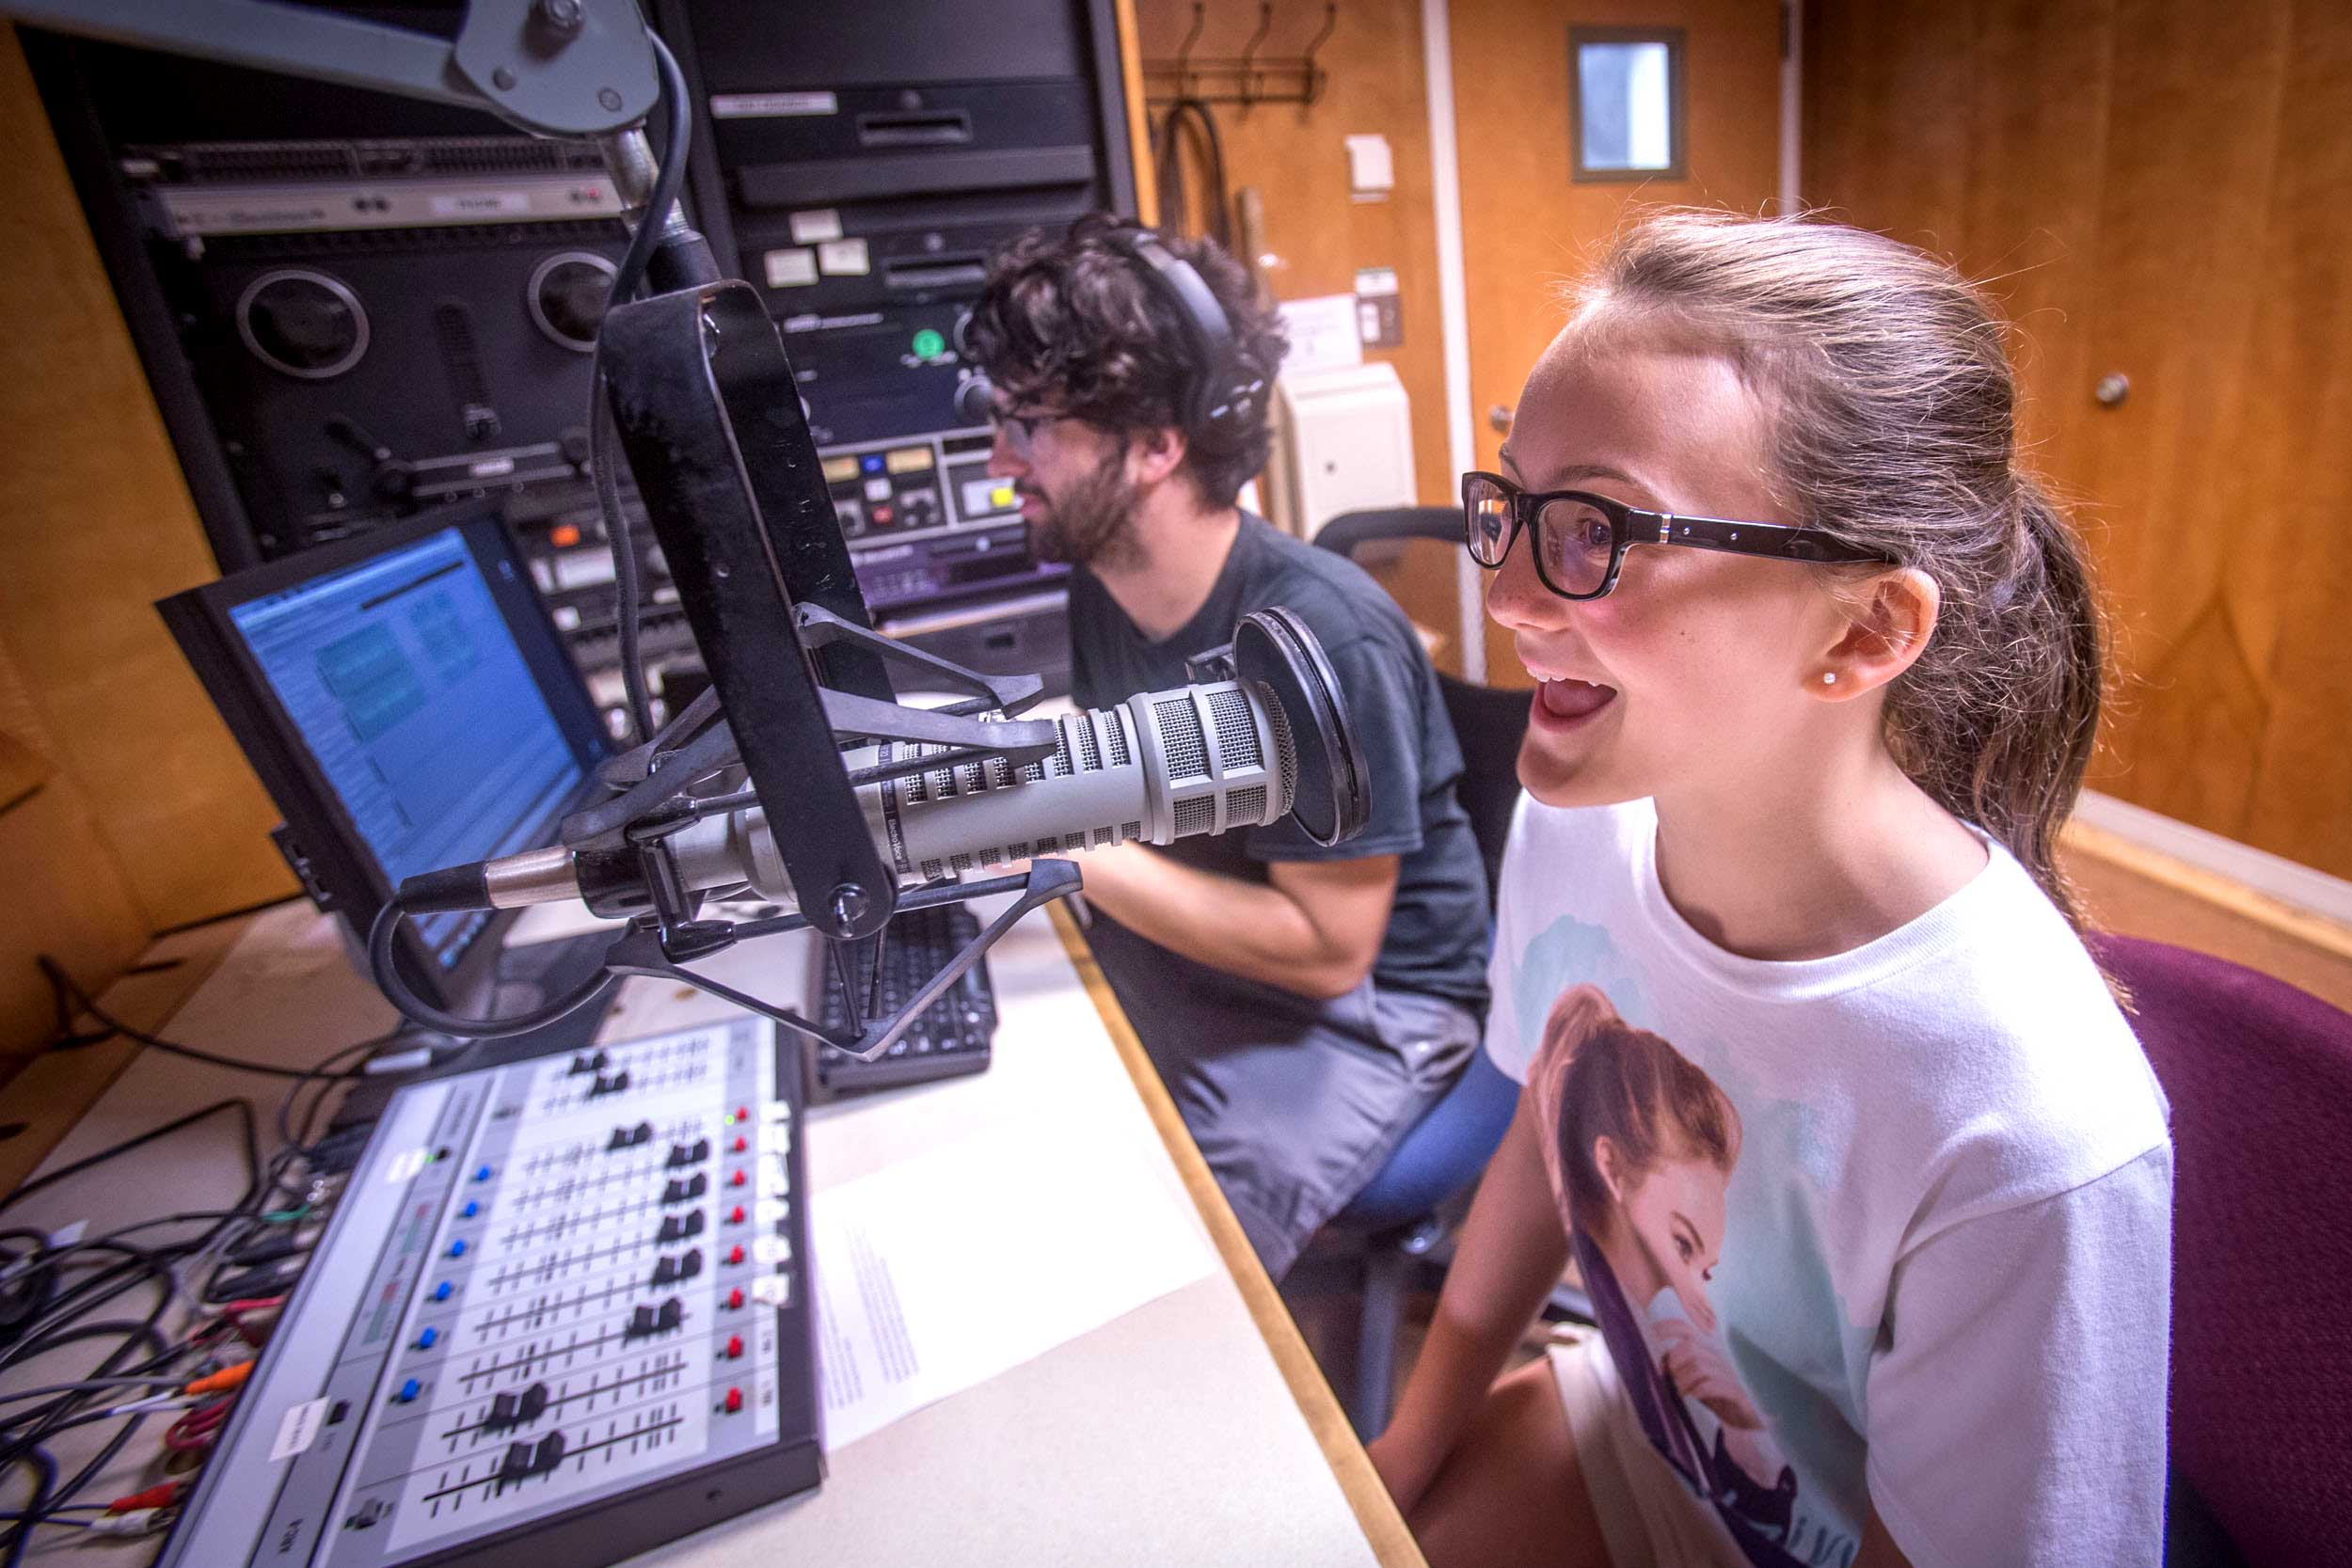 The camp gave students the opportunity to produce and record their own radio shows. (Photo by Sanjay Suchak, University Communications)